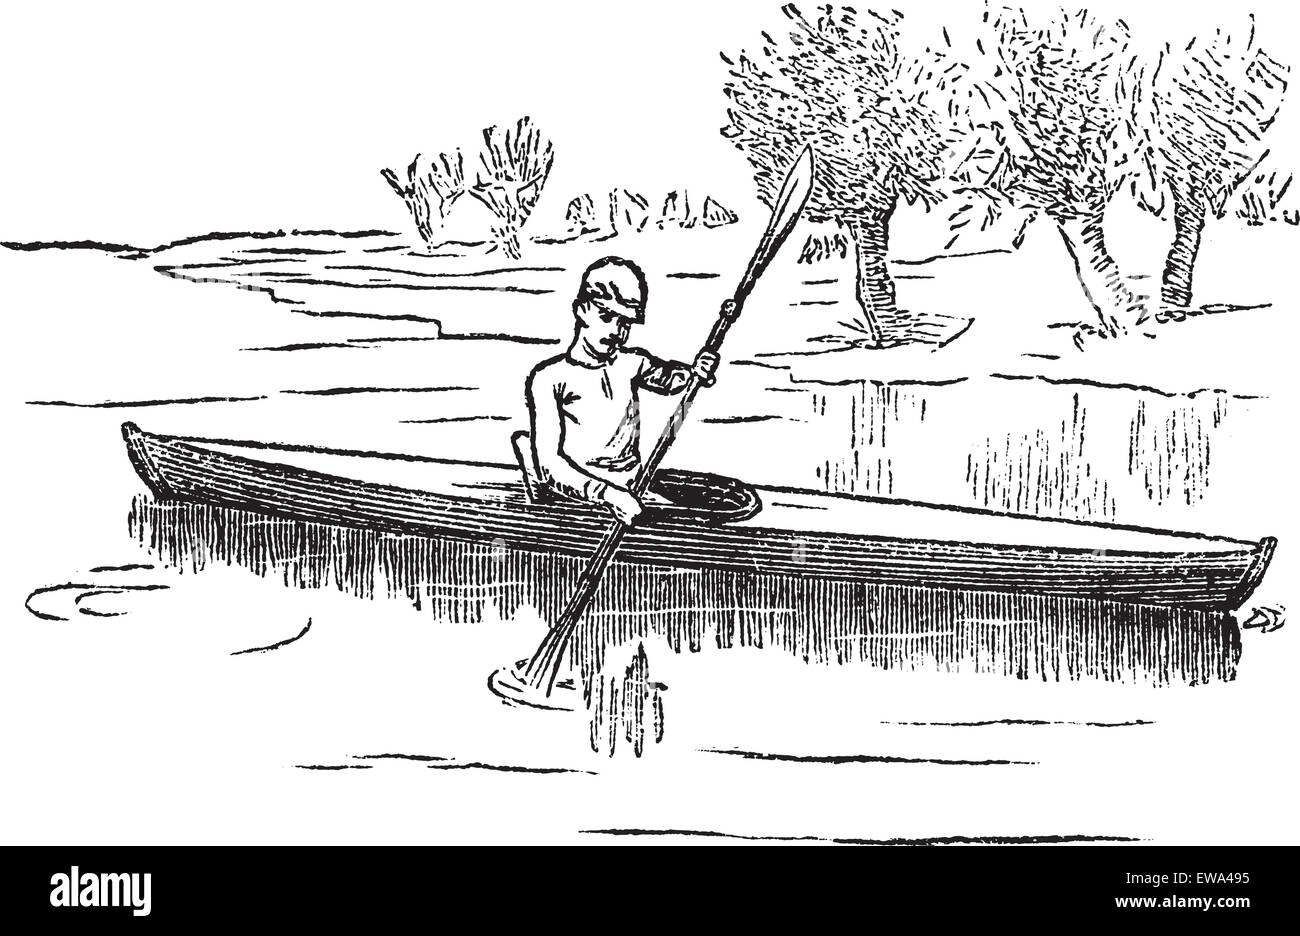 Canoe or Canadian canoe, vintage engraving. Old engraved illustration of man canoeing in the lake. - Stock Vector